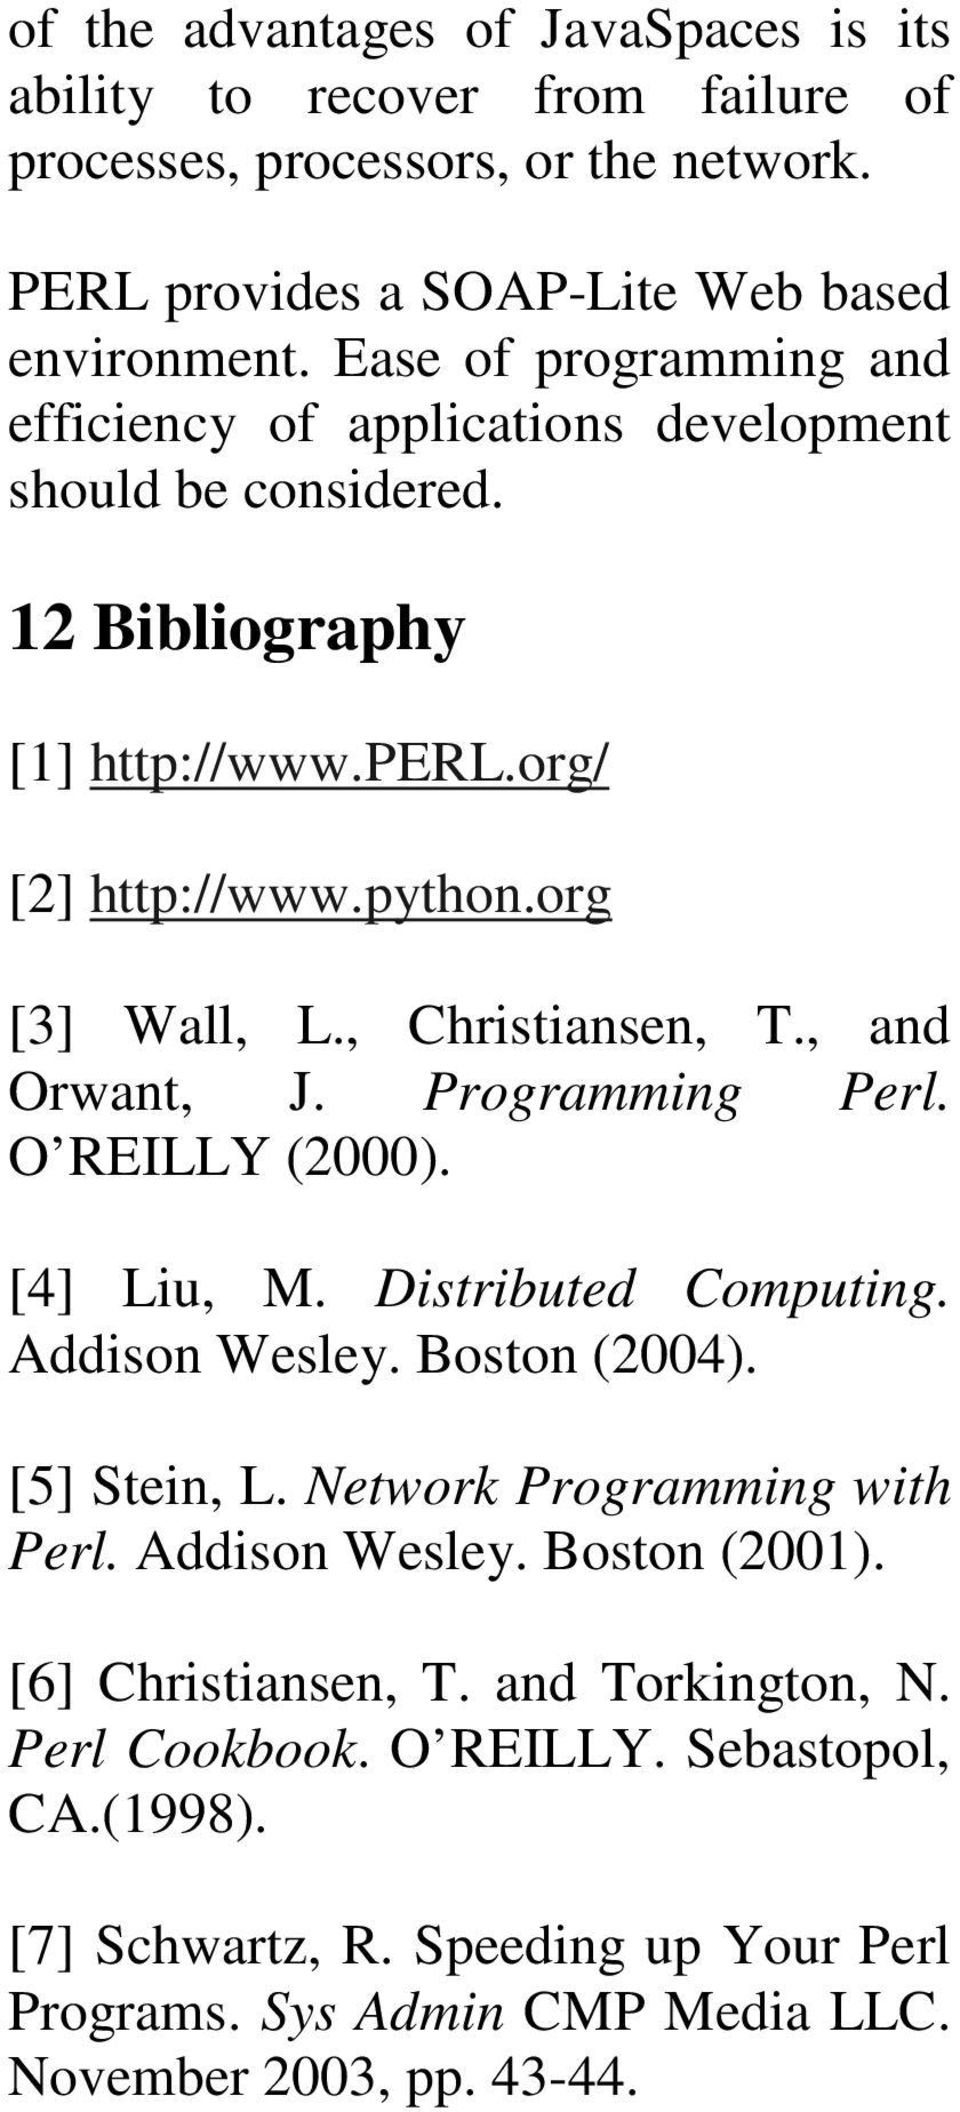 , and Orwant, J. Programming Perl. O REILLY (2000). [4] Liu, M. Distributed Computing. Addison Wesley. Boston (2004). [5] Stein, L. Network Programming with Perl. Addison Wesley. Boston (2001).